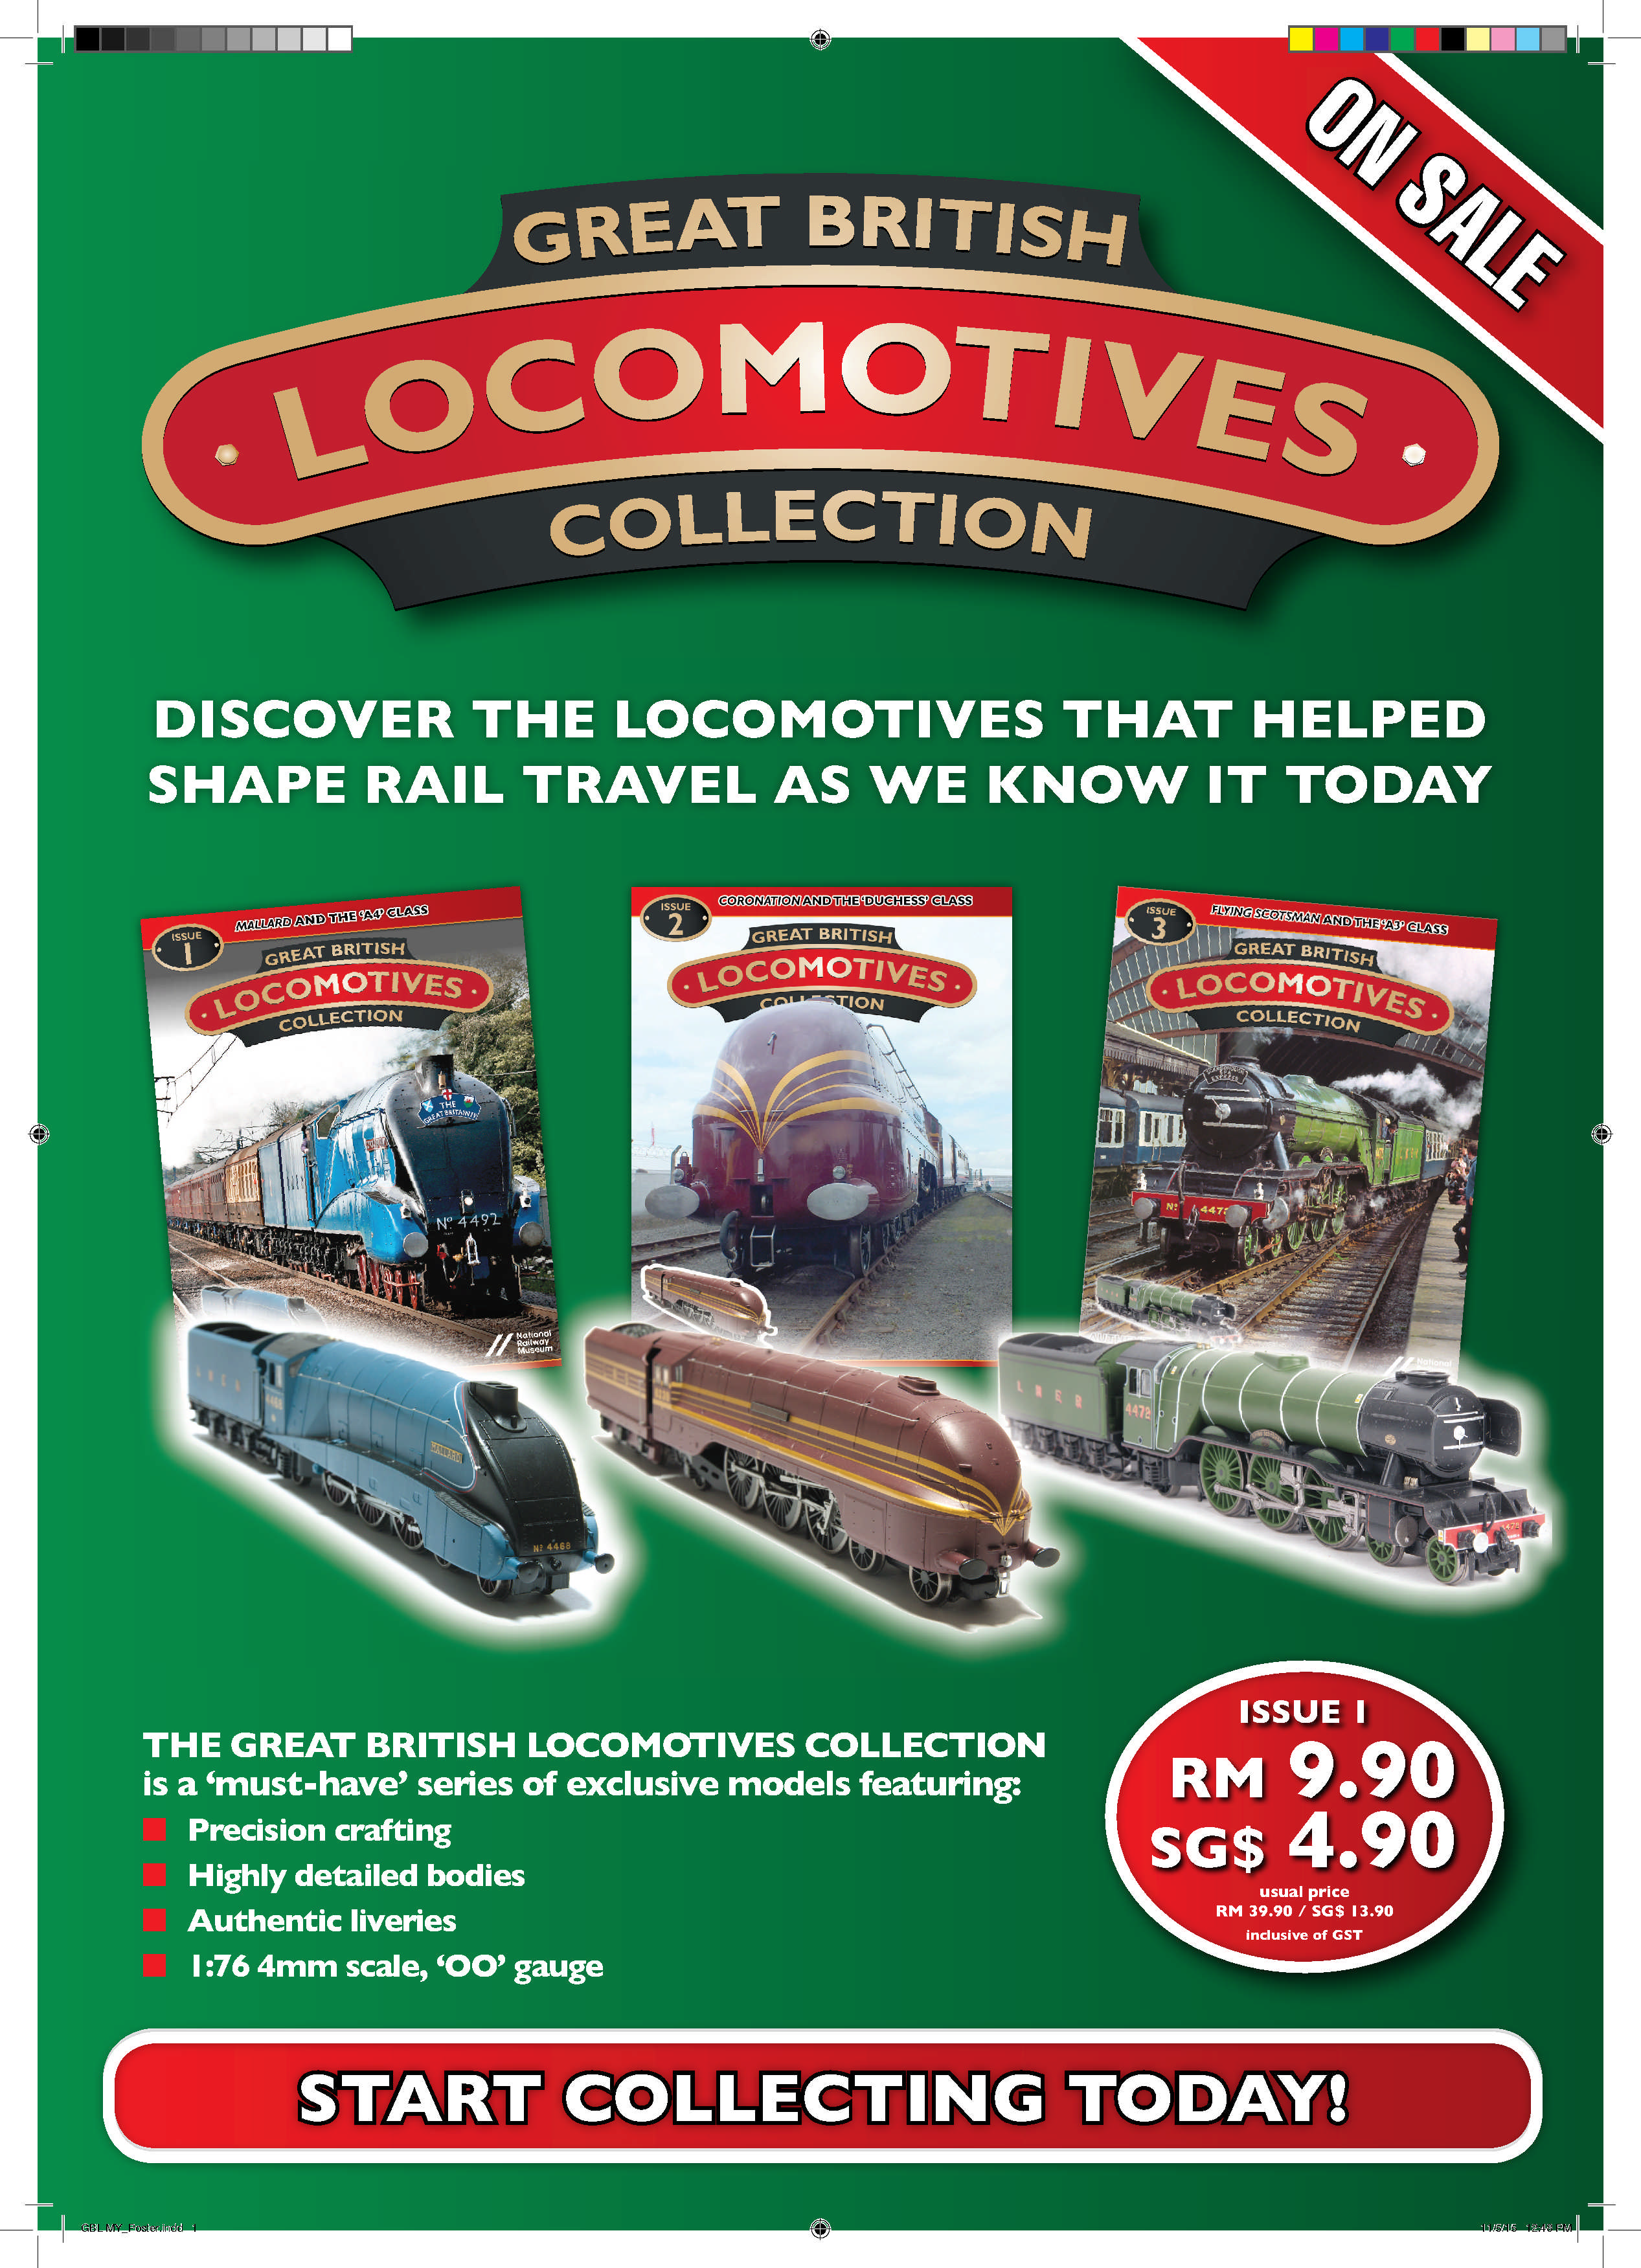 GREAT BRITISH LOCOMOTIVES Magazine